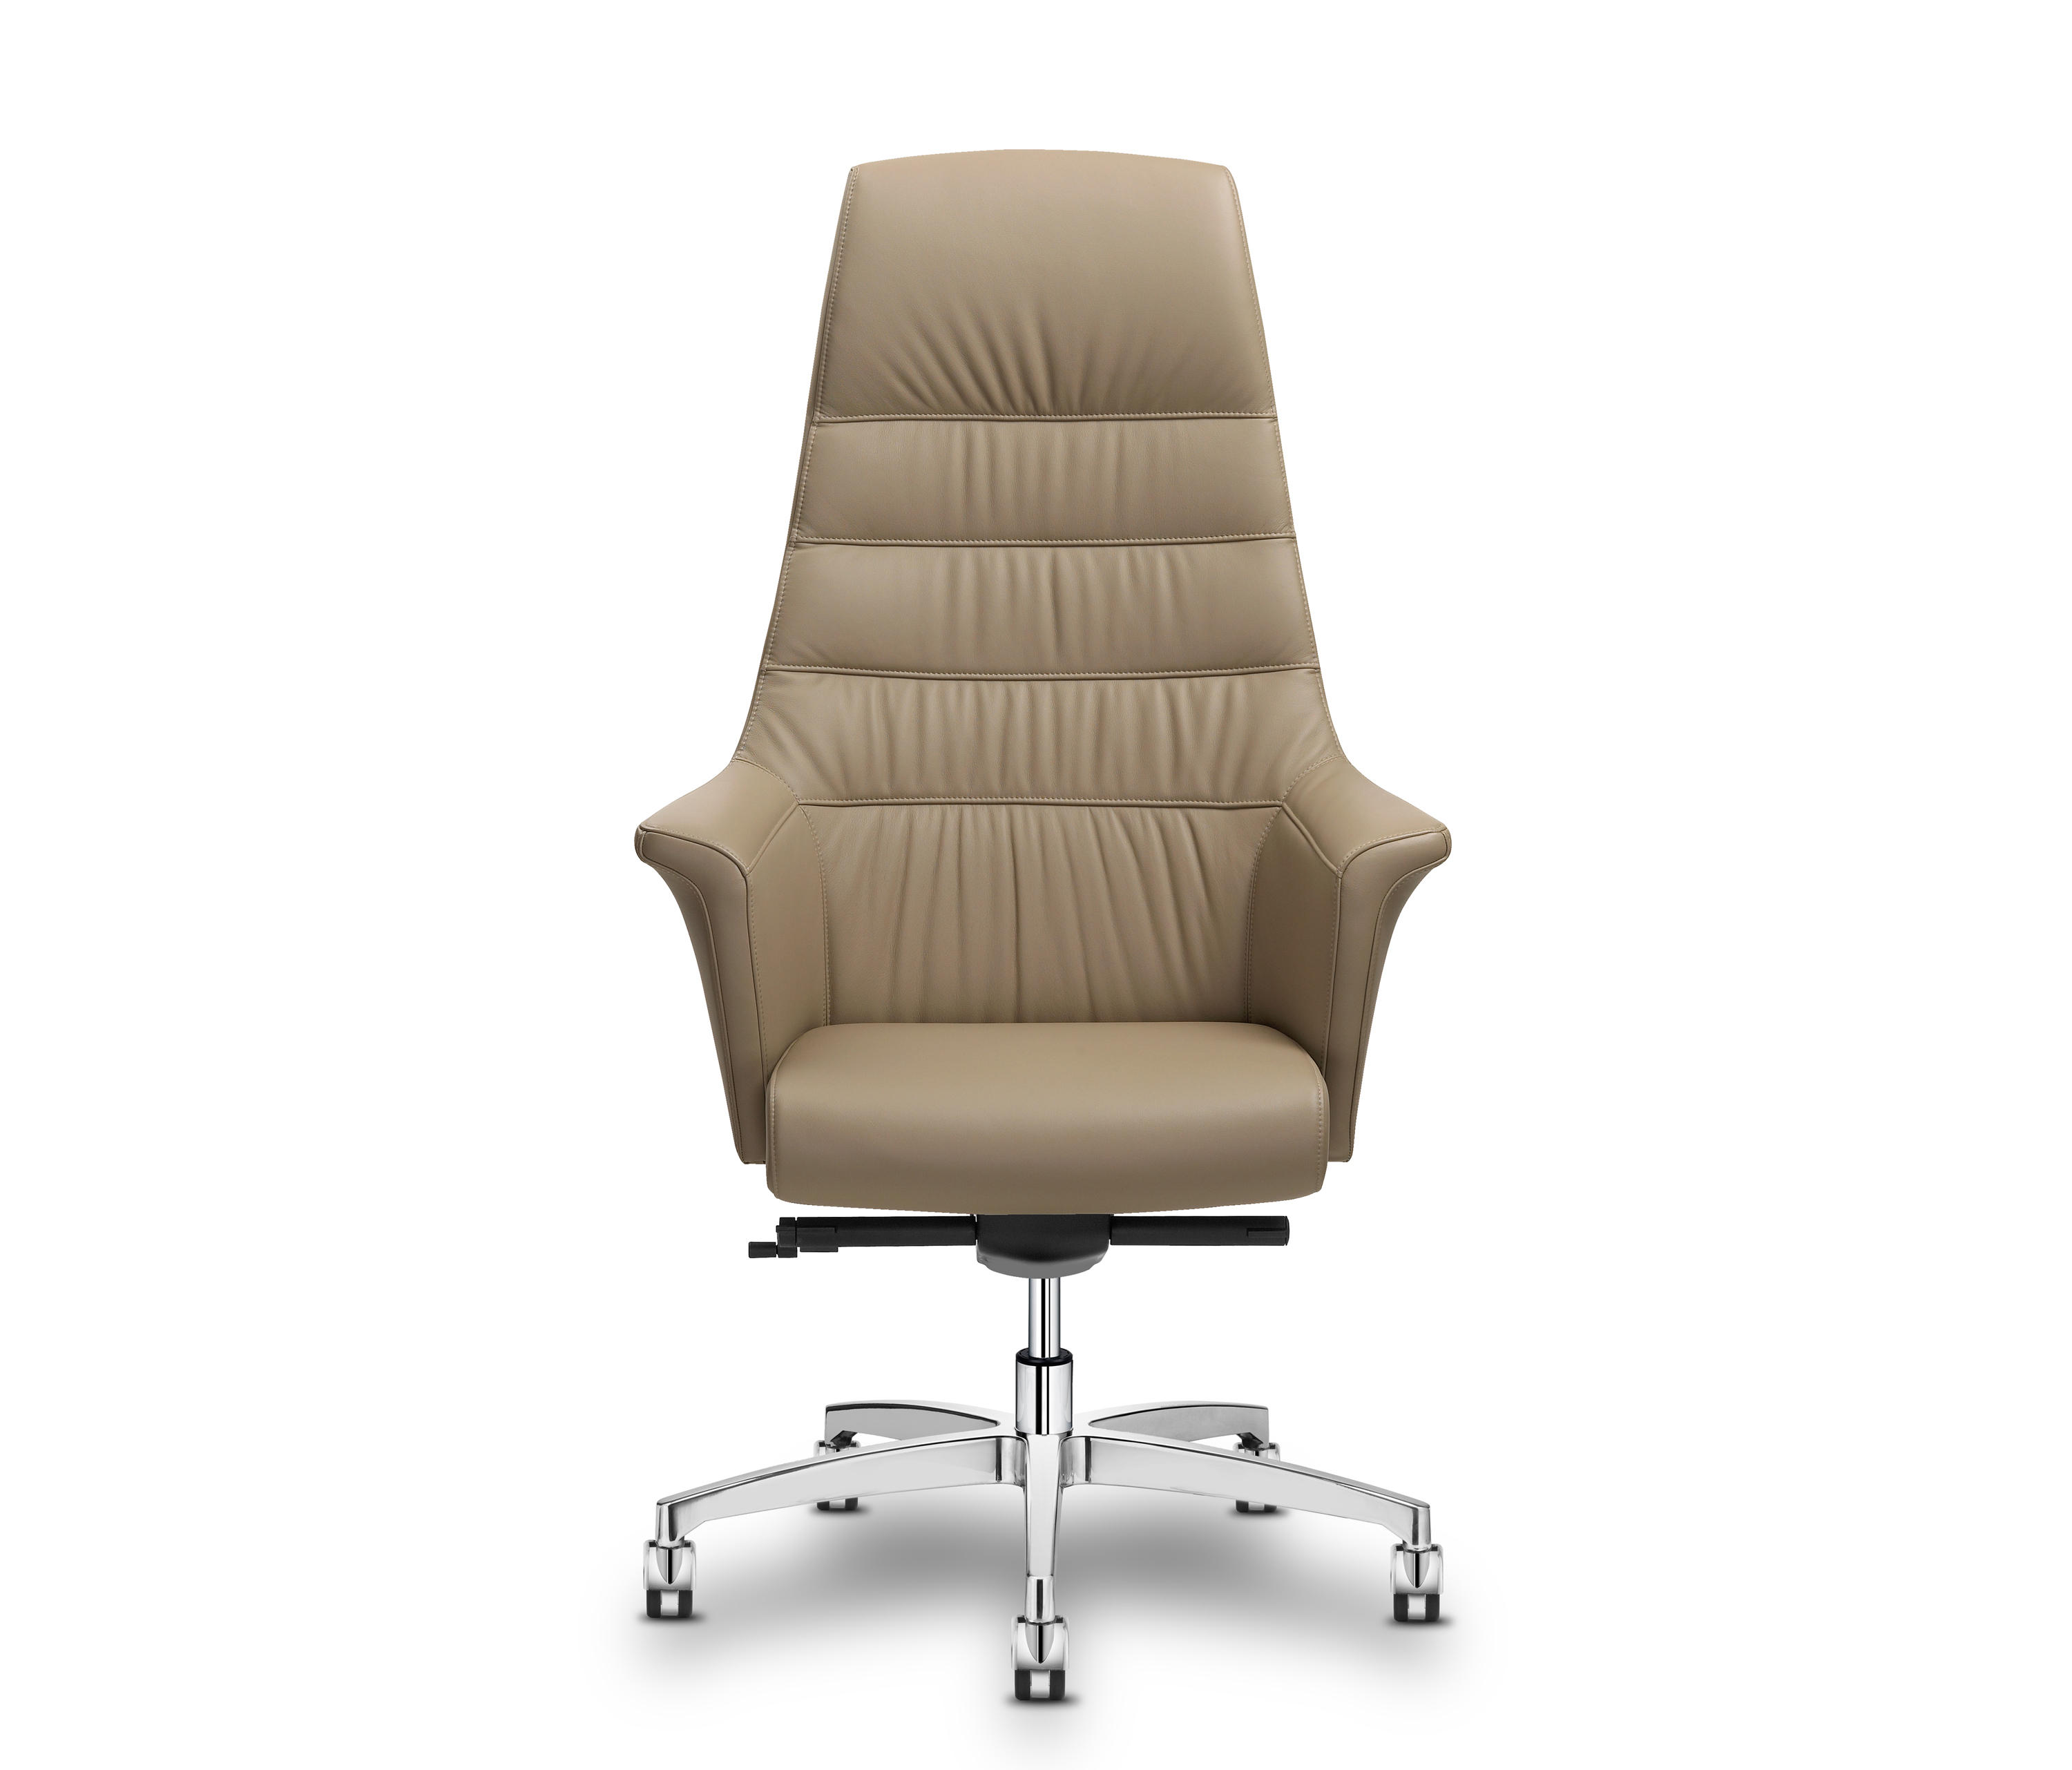 OF COURSE EXECUTIVE Executive chairs from sitland